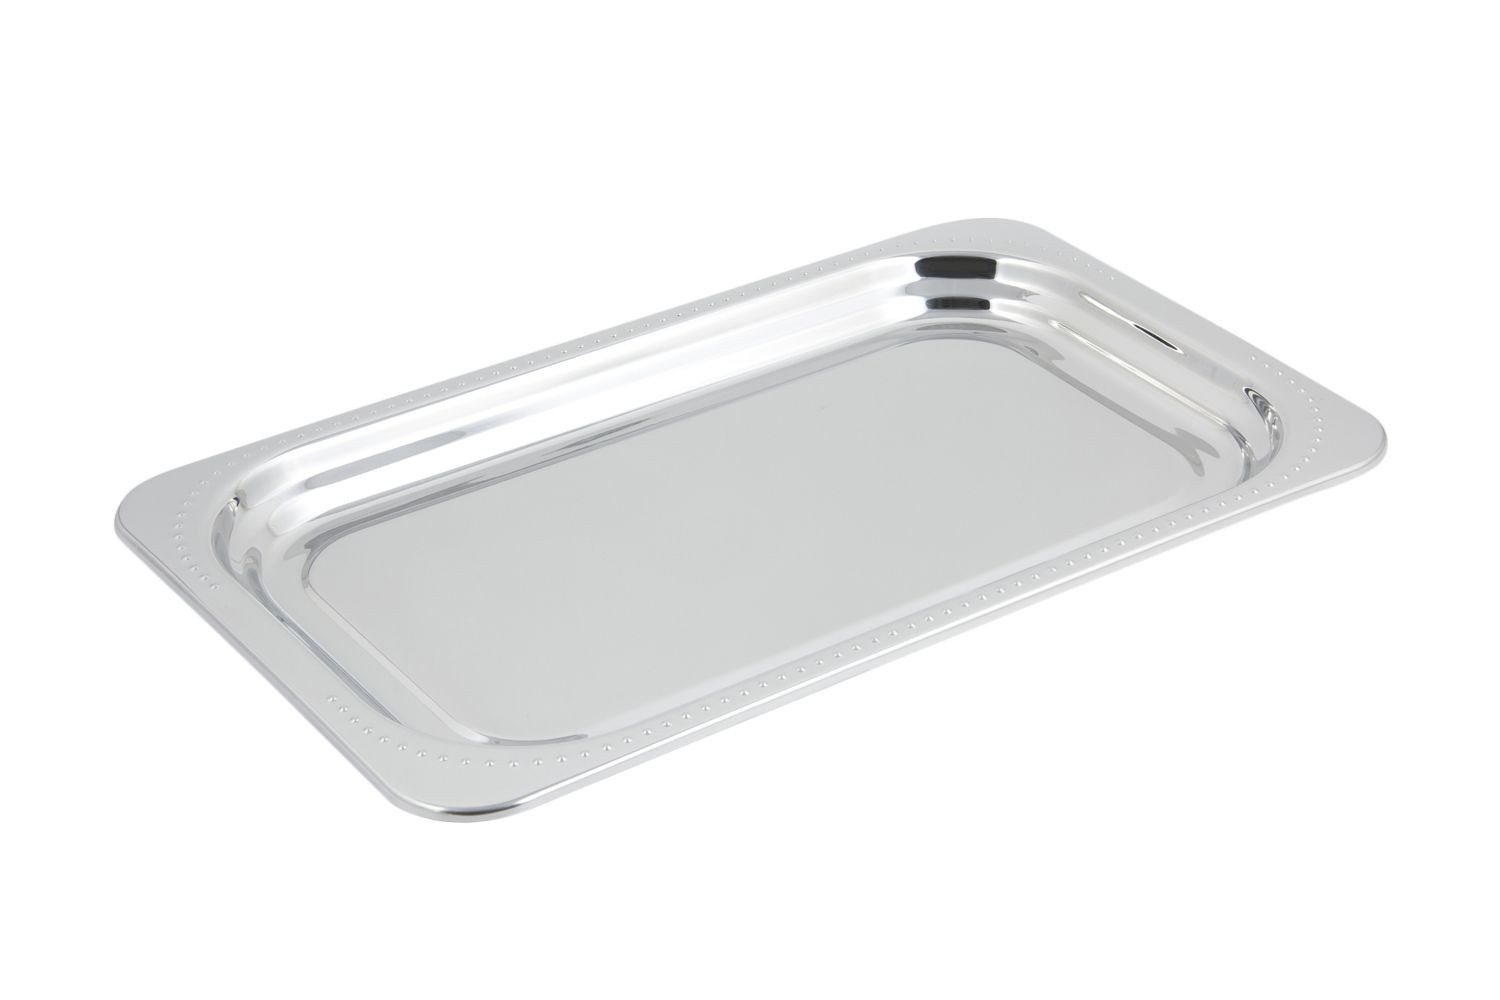 Bon Chef 5307 Bolero Design Rectangular Full-Size Food Pan, 4 1/2 Qt.